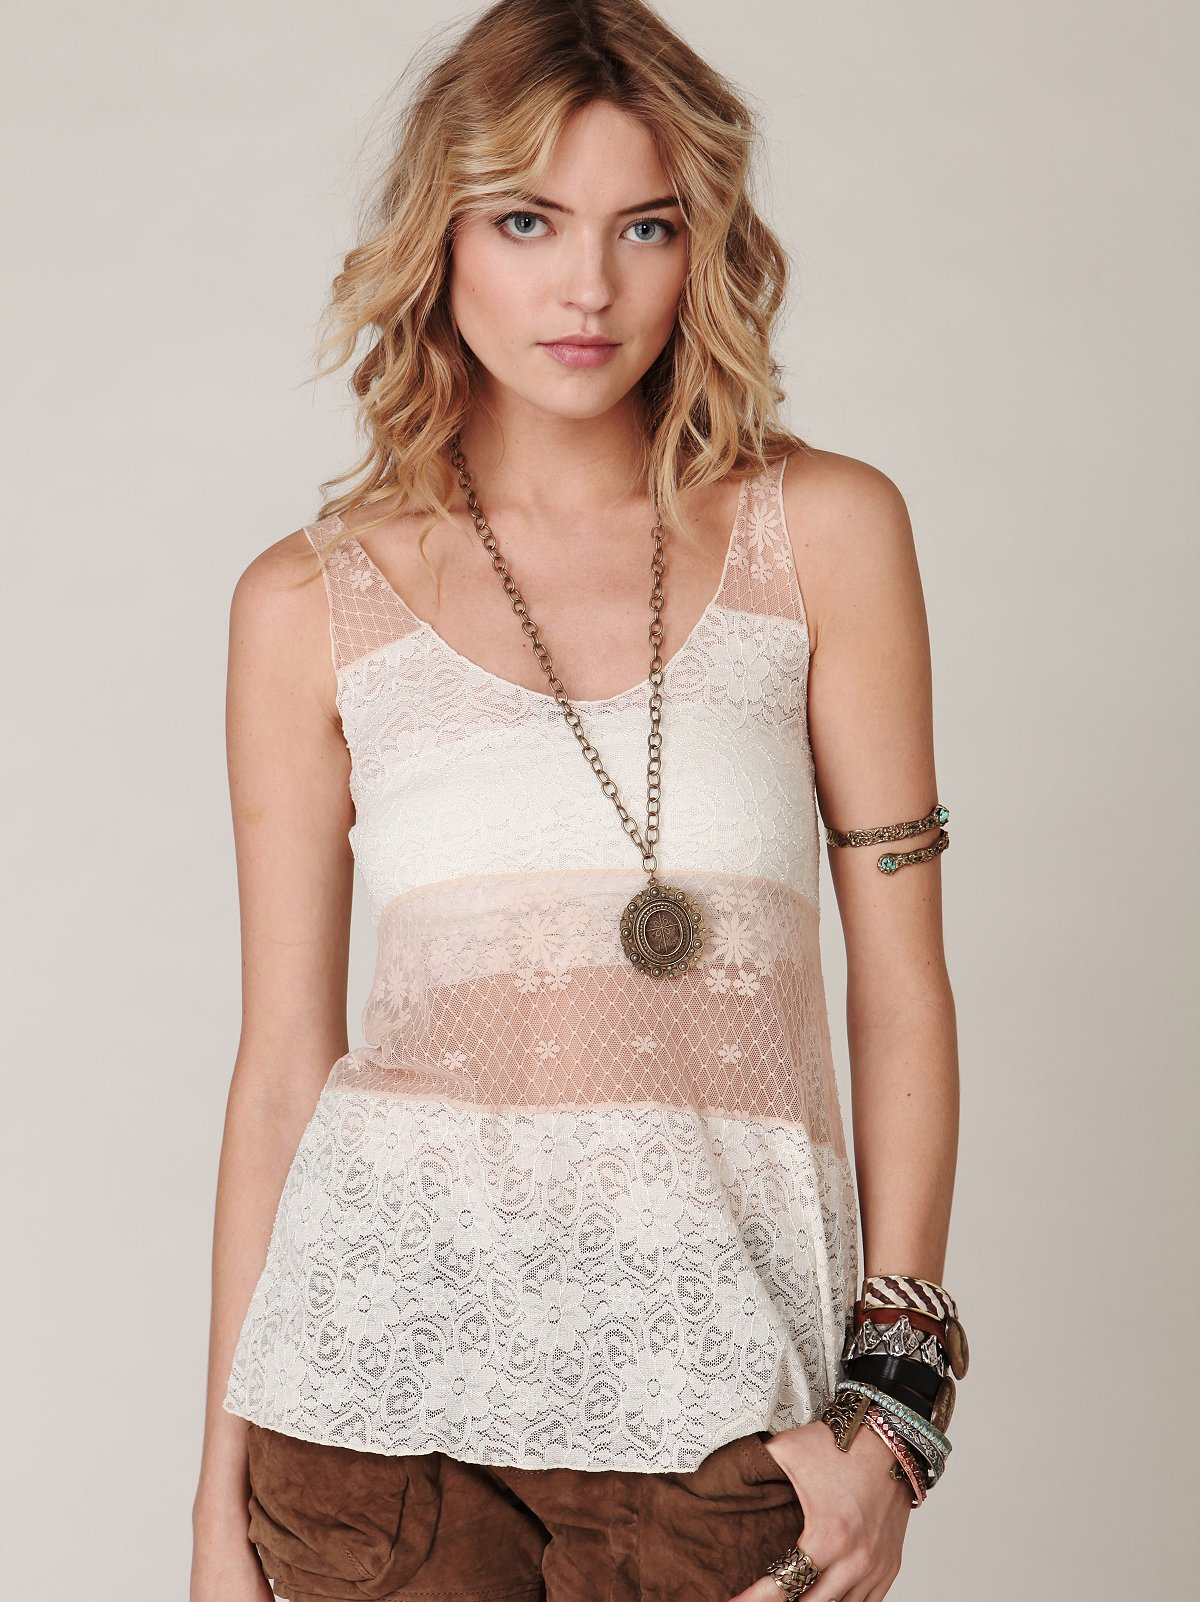 Patched Lace Cami